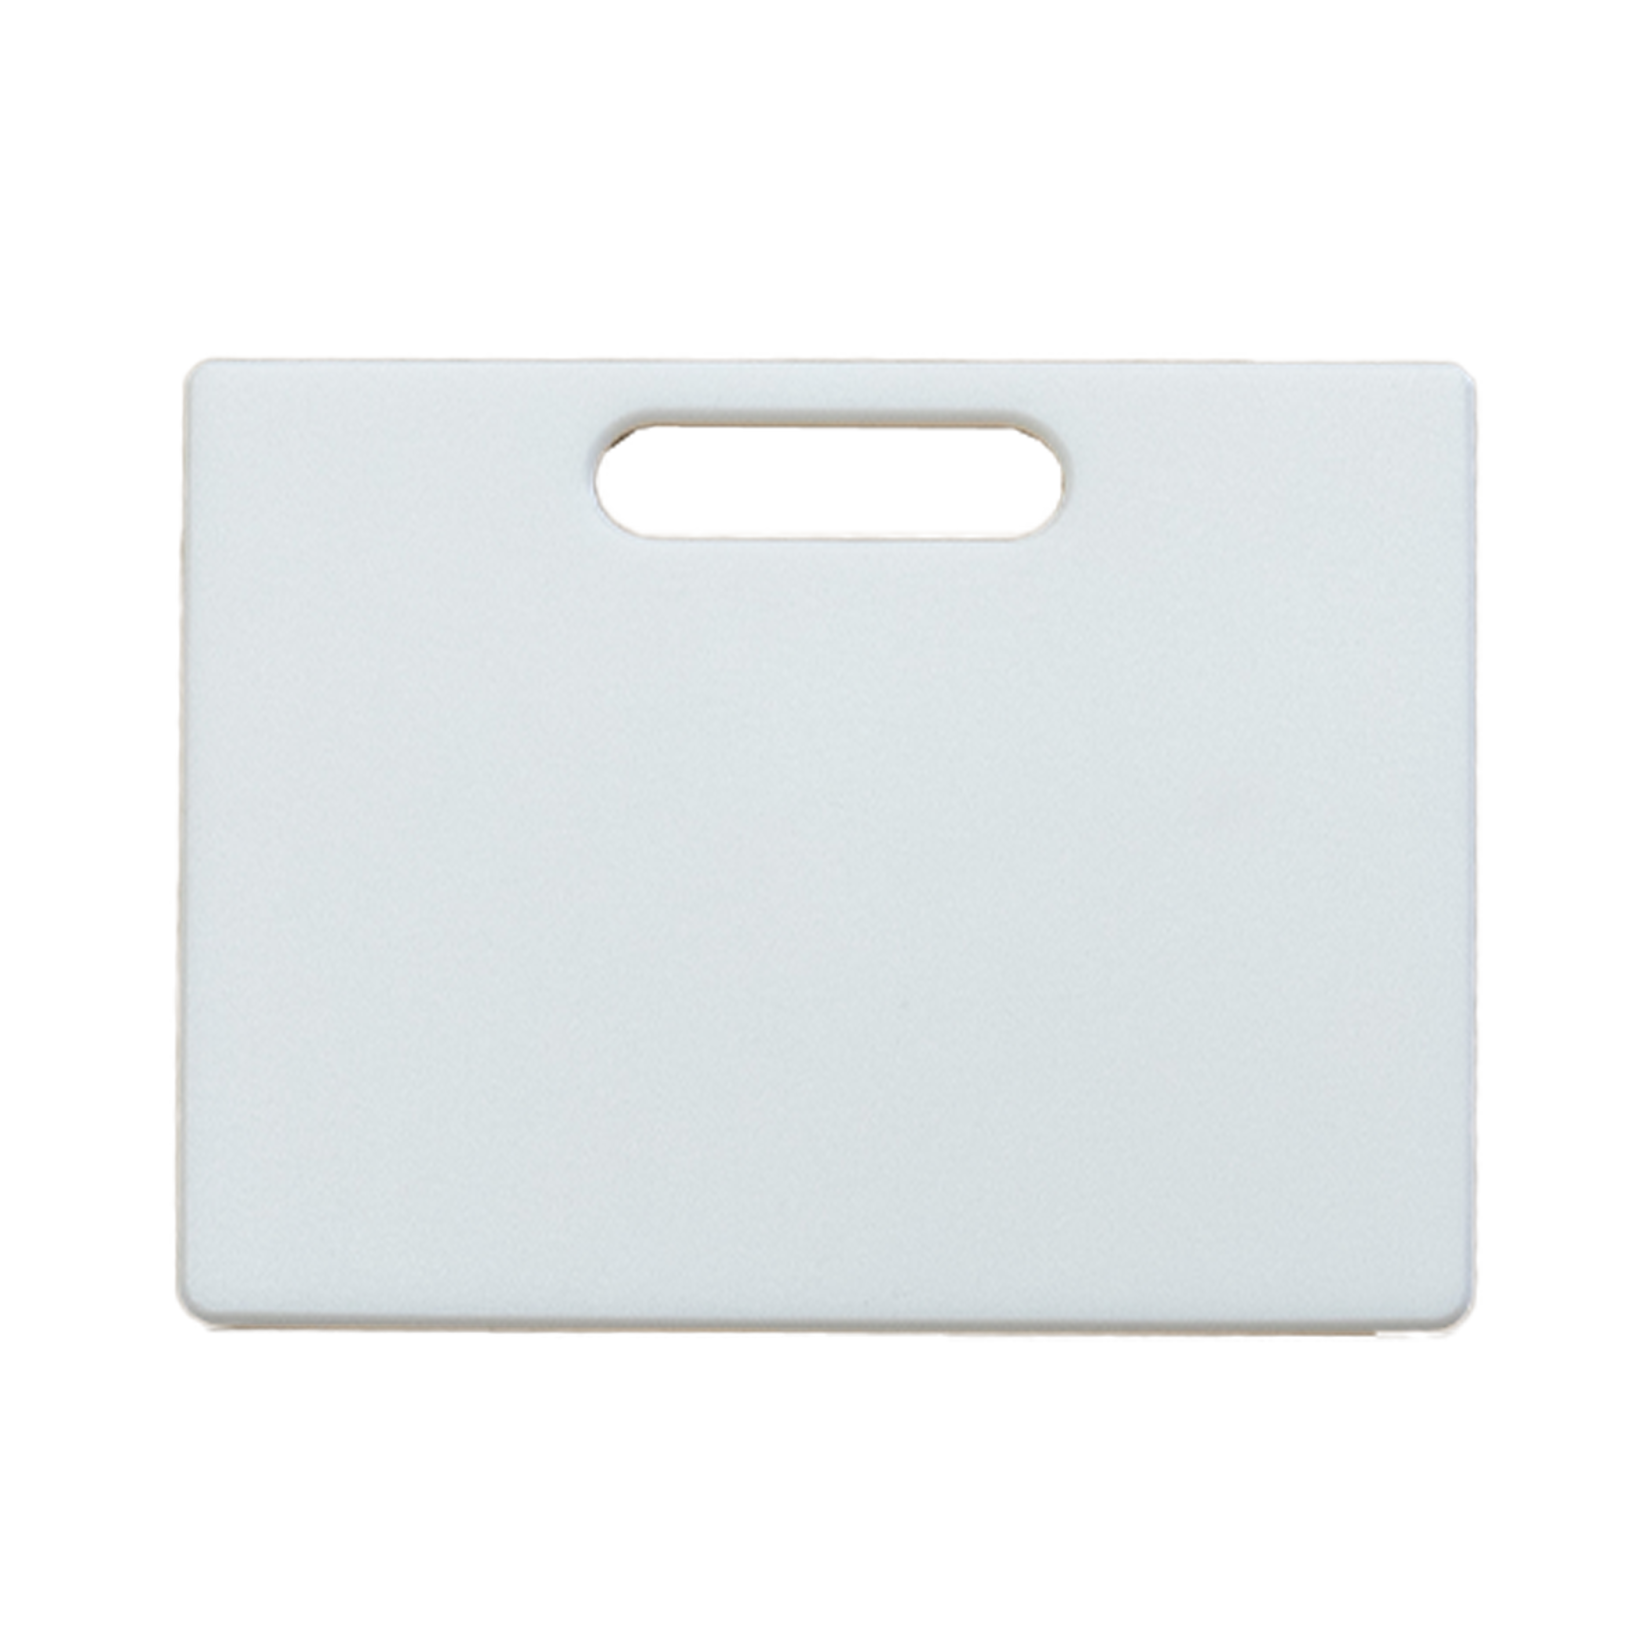 Canyon Coolers Canyon Cooler PRO 150 Divider